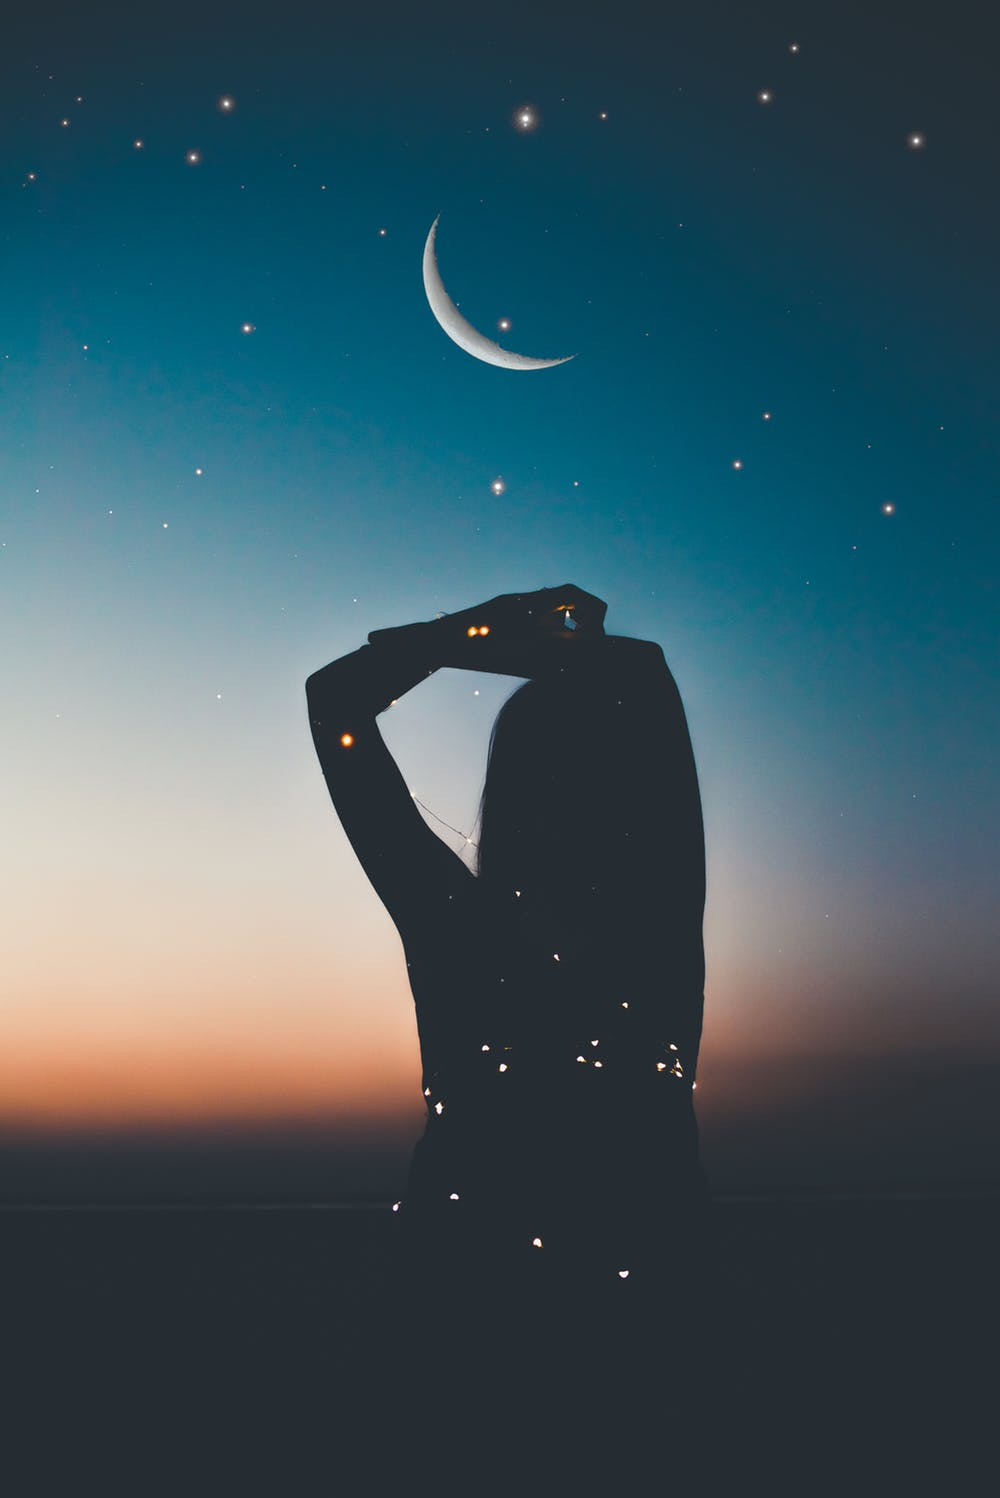 La Luna Magic Cycle Scheduler - A 12-week Course + Mentorship Immersion into the wisdom of Mother Nature's intuitive ebb and flow